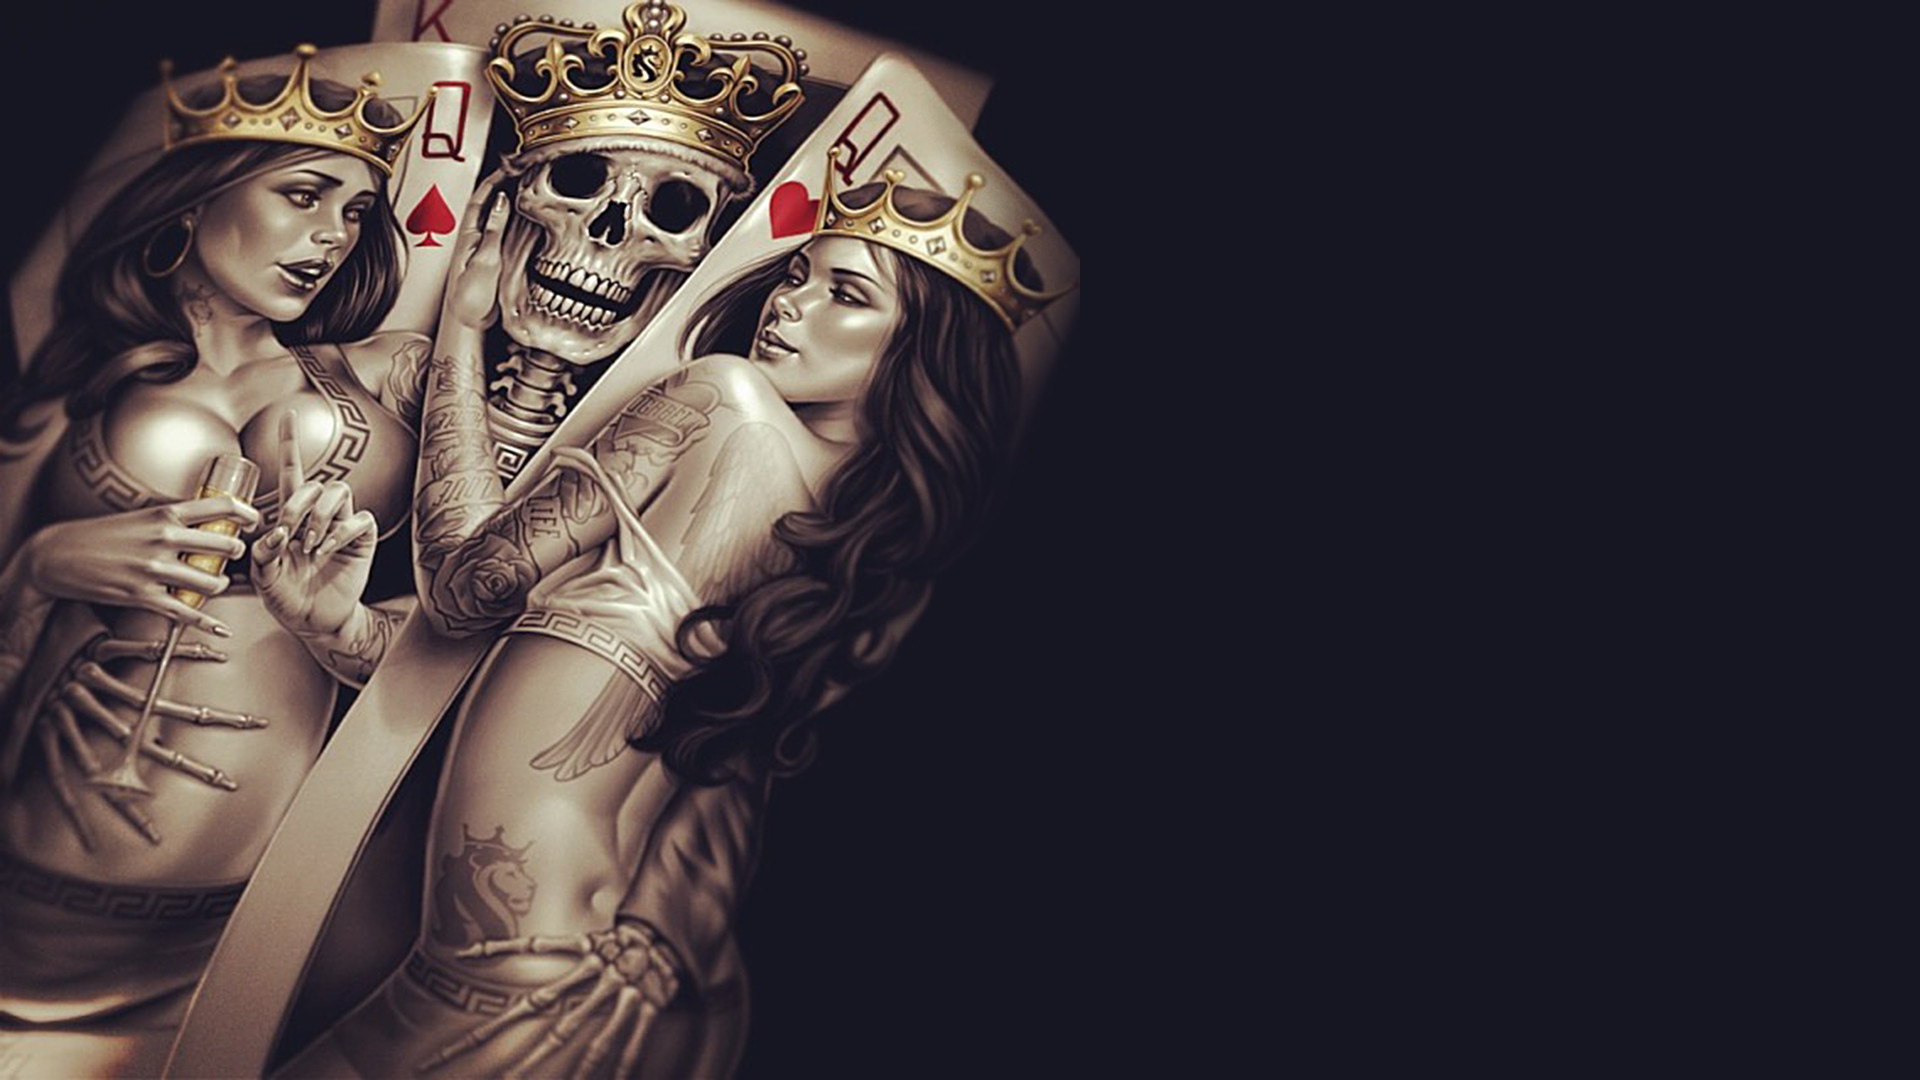 Free Skull Wallpapers | Wallpapers, Backgrounds, Images, Art Photos.